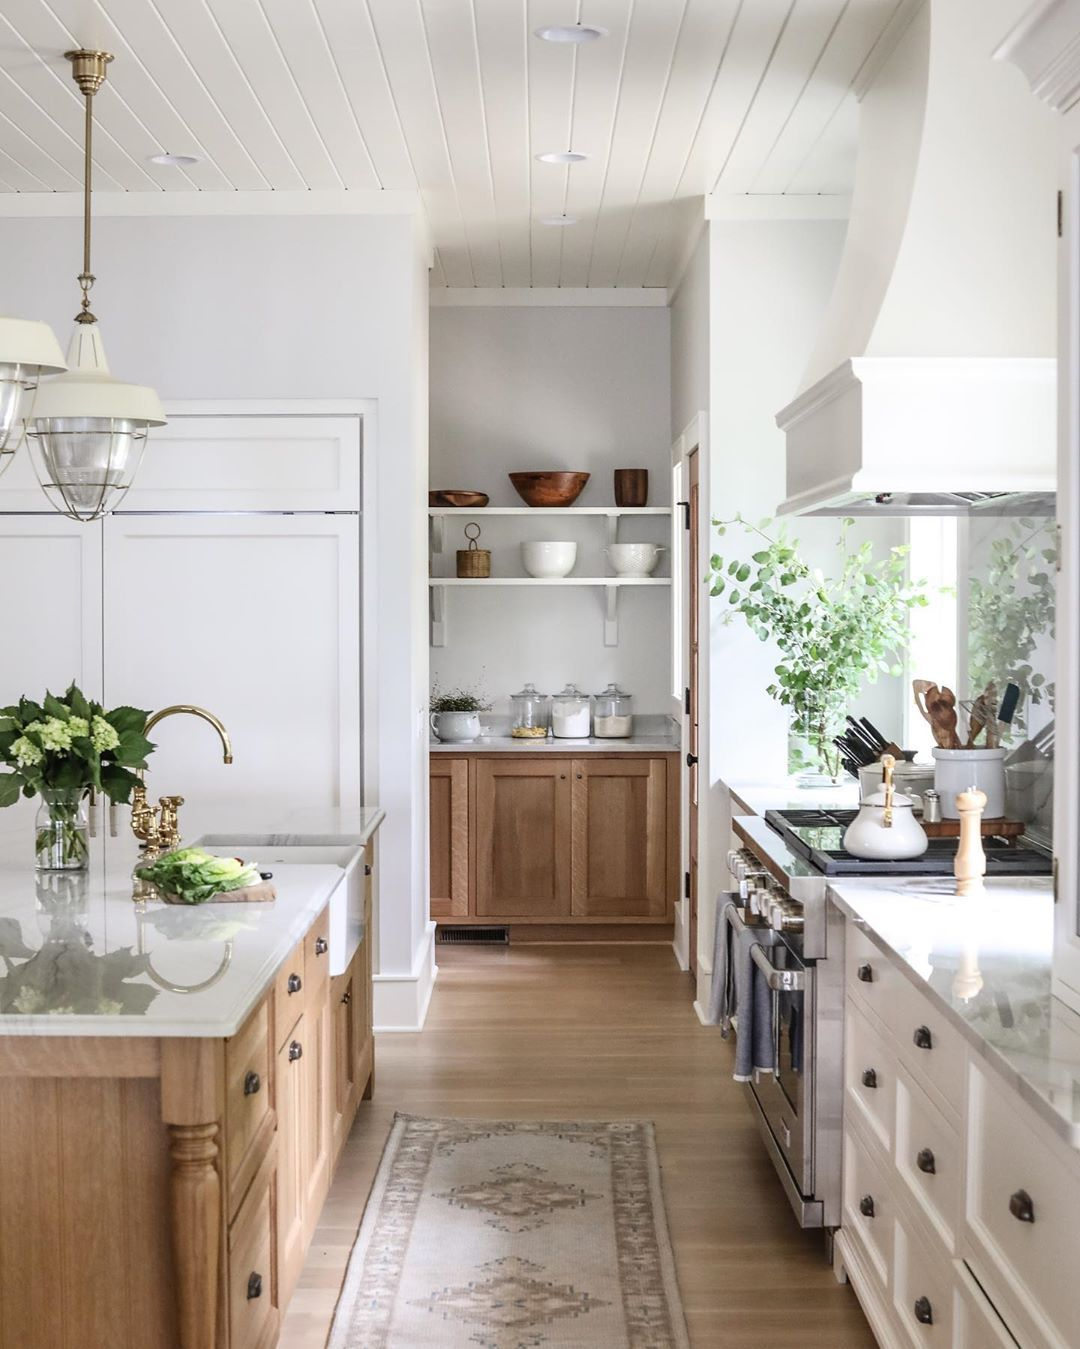 Thank You Ruemagazine For Featuring Our Wisconsin Lake House Project New Kitchen Cabinets Kitchen Style Interior Design Kitchen